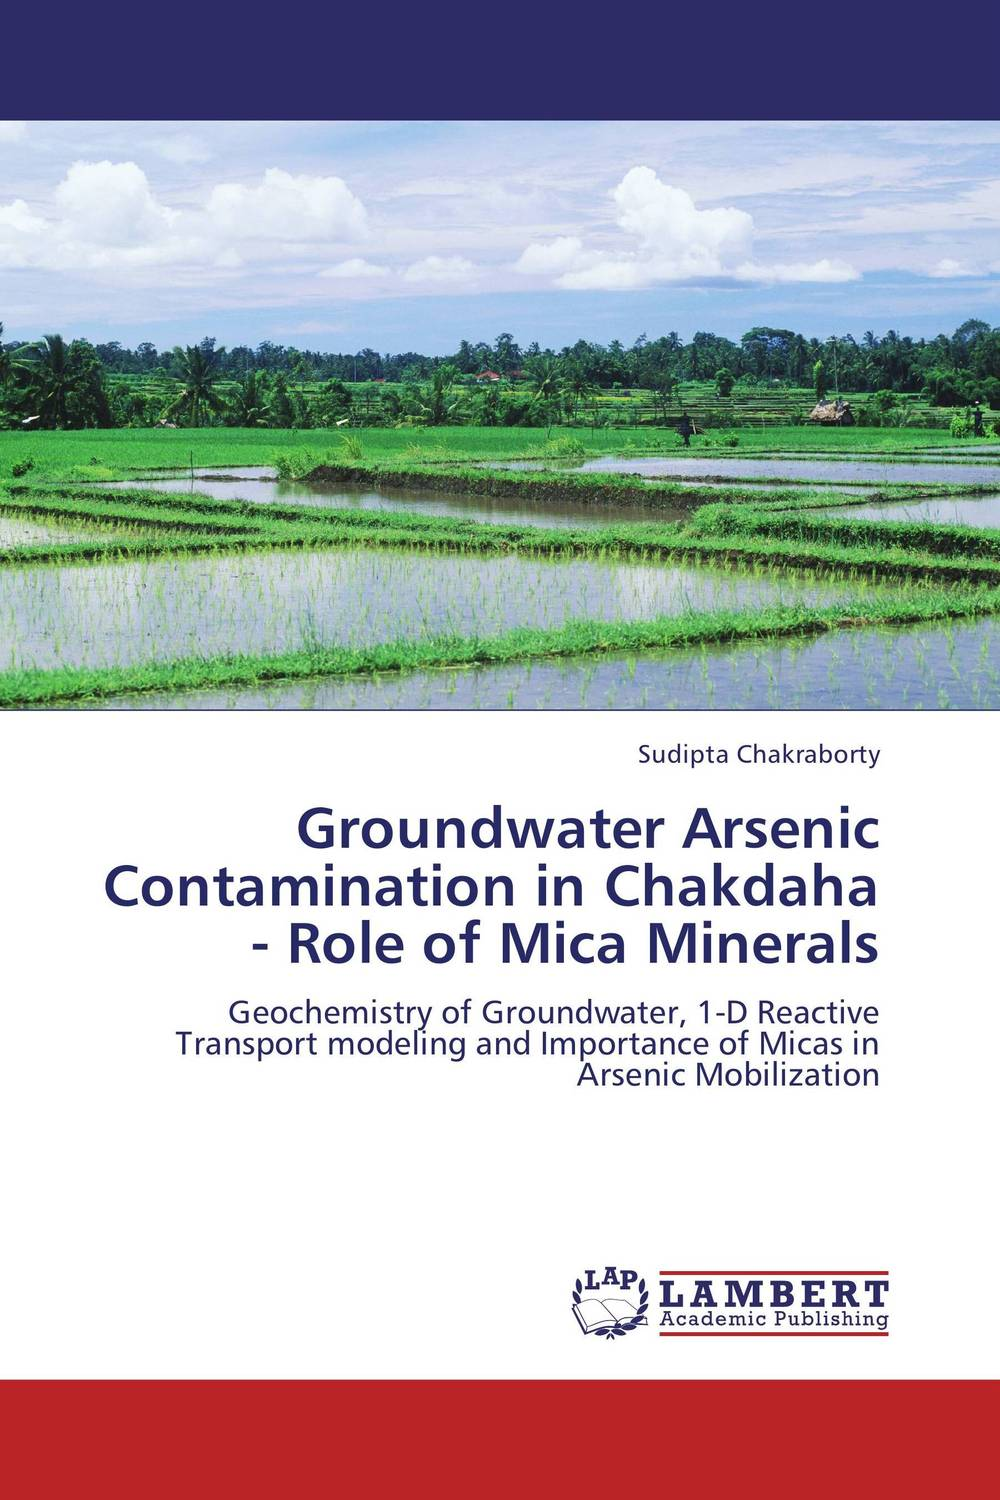 Groundwater Arsenic Contamination in Chakdaha - Role of Mica Minerals